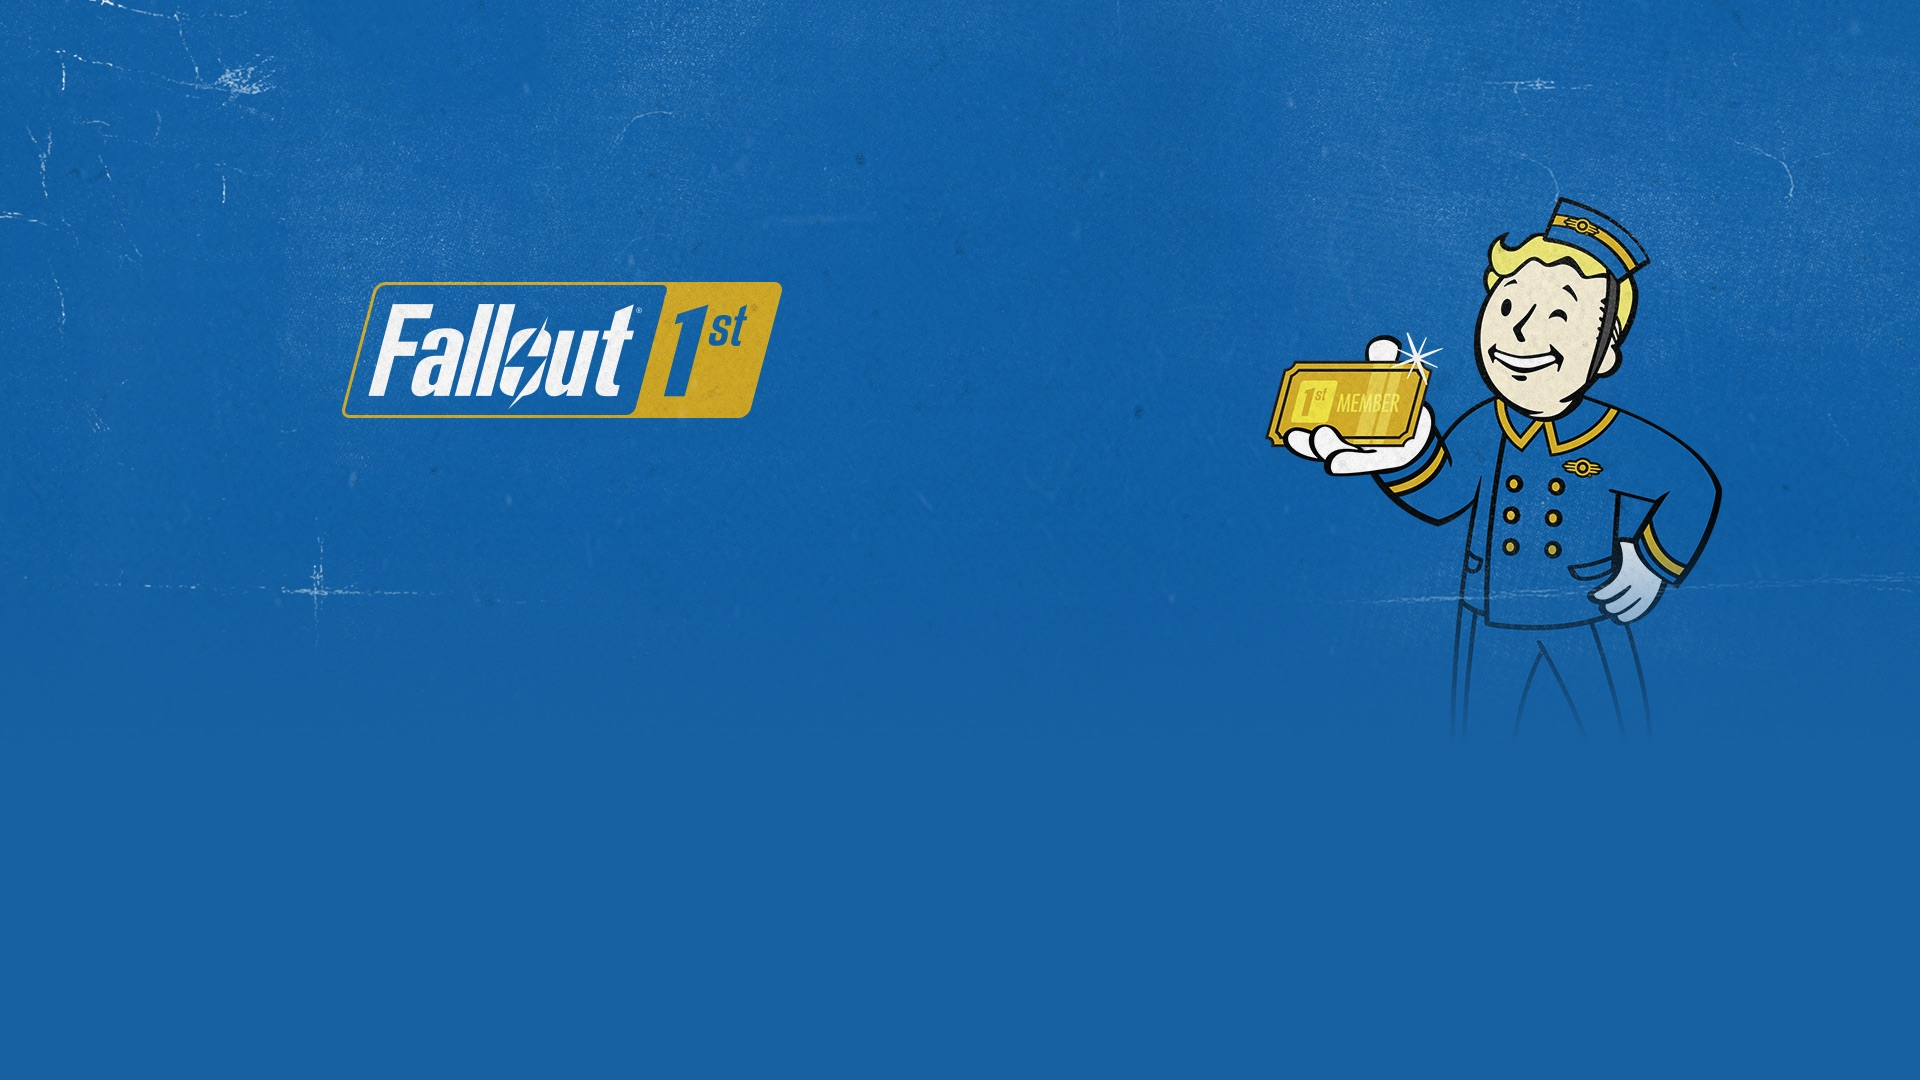 Fallout First